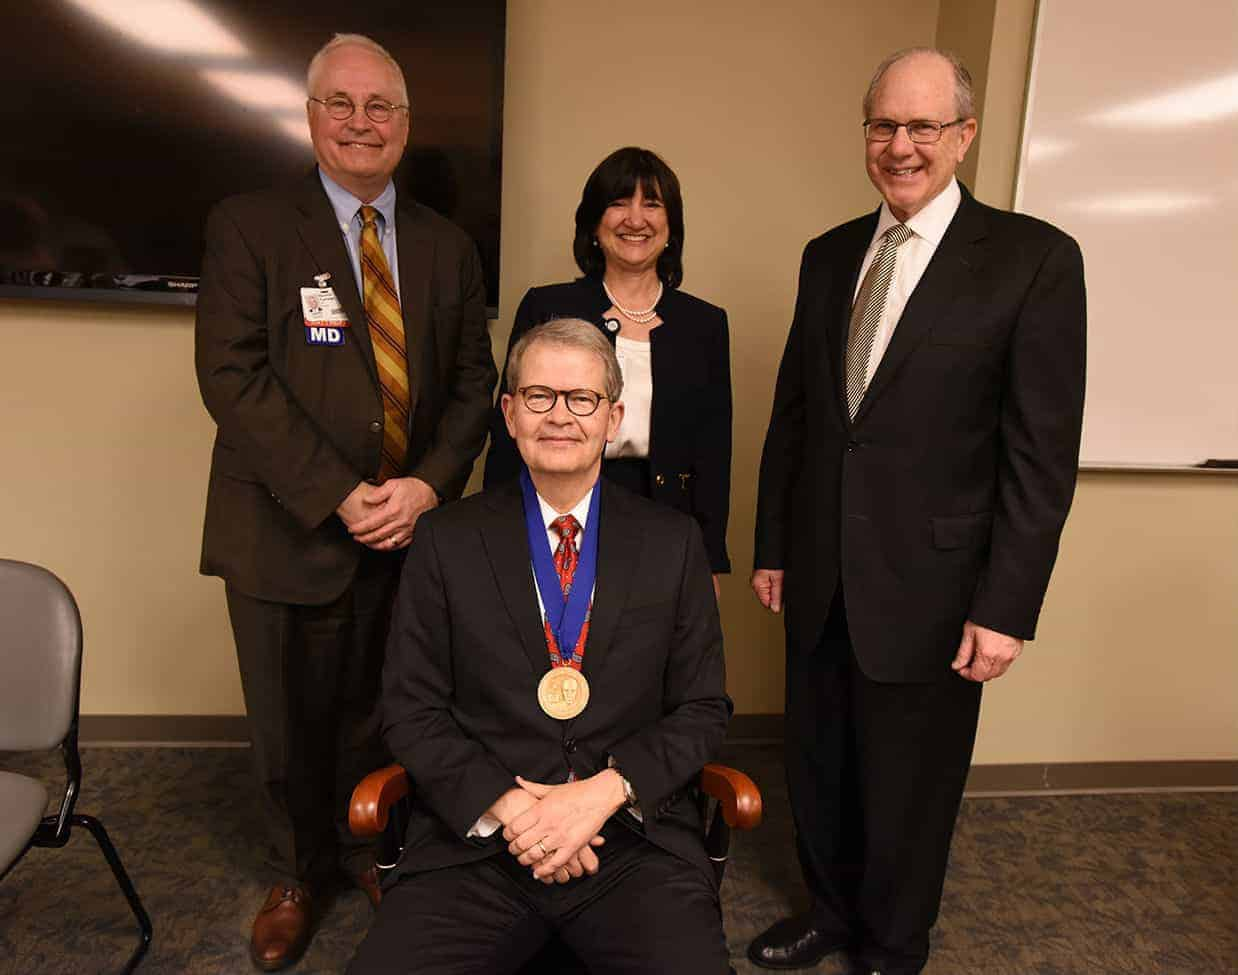 James McDonald, M.D. sits in the chair given to him as part of the investiture, shown here with (from left) Richard Turnage, M.D., UAMS Interim Chancellor Stephanie Gardner, Pharm.D., Ed.D., and Christopher Westfall, M.D.